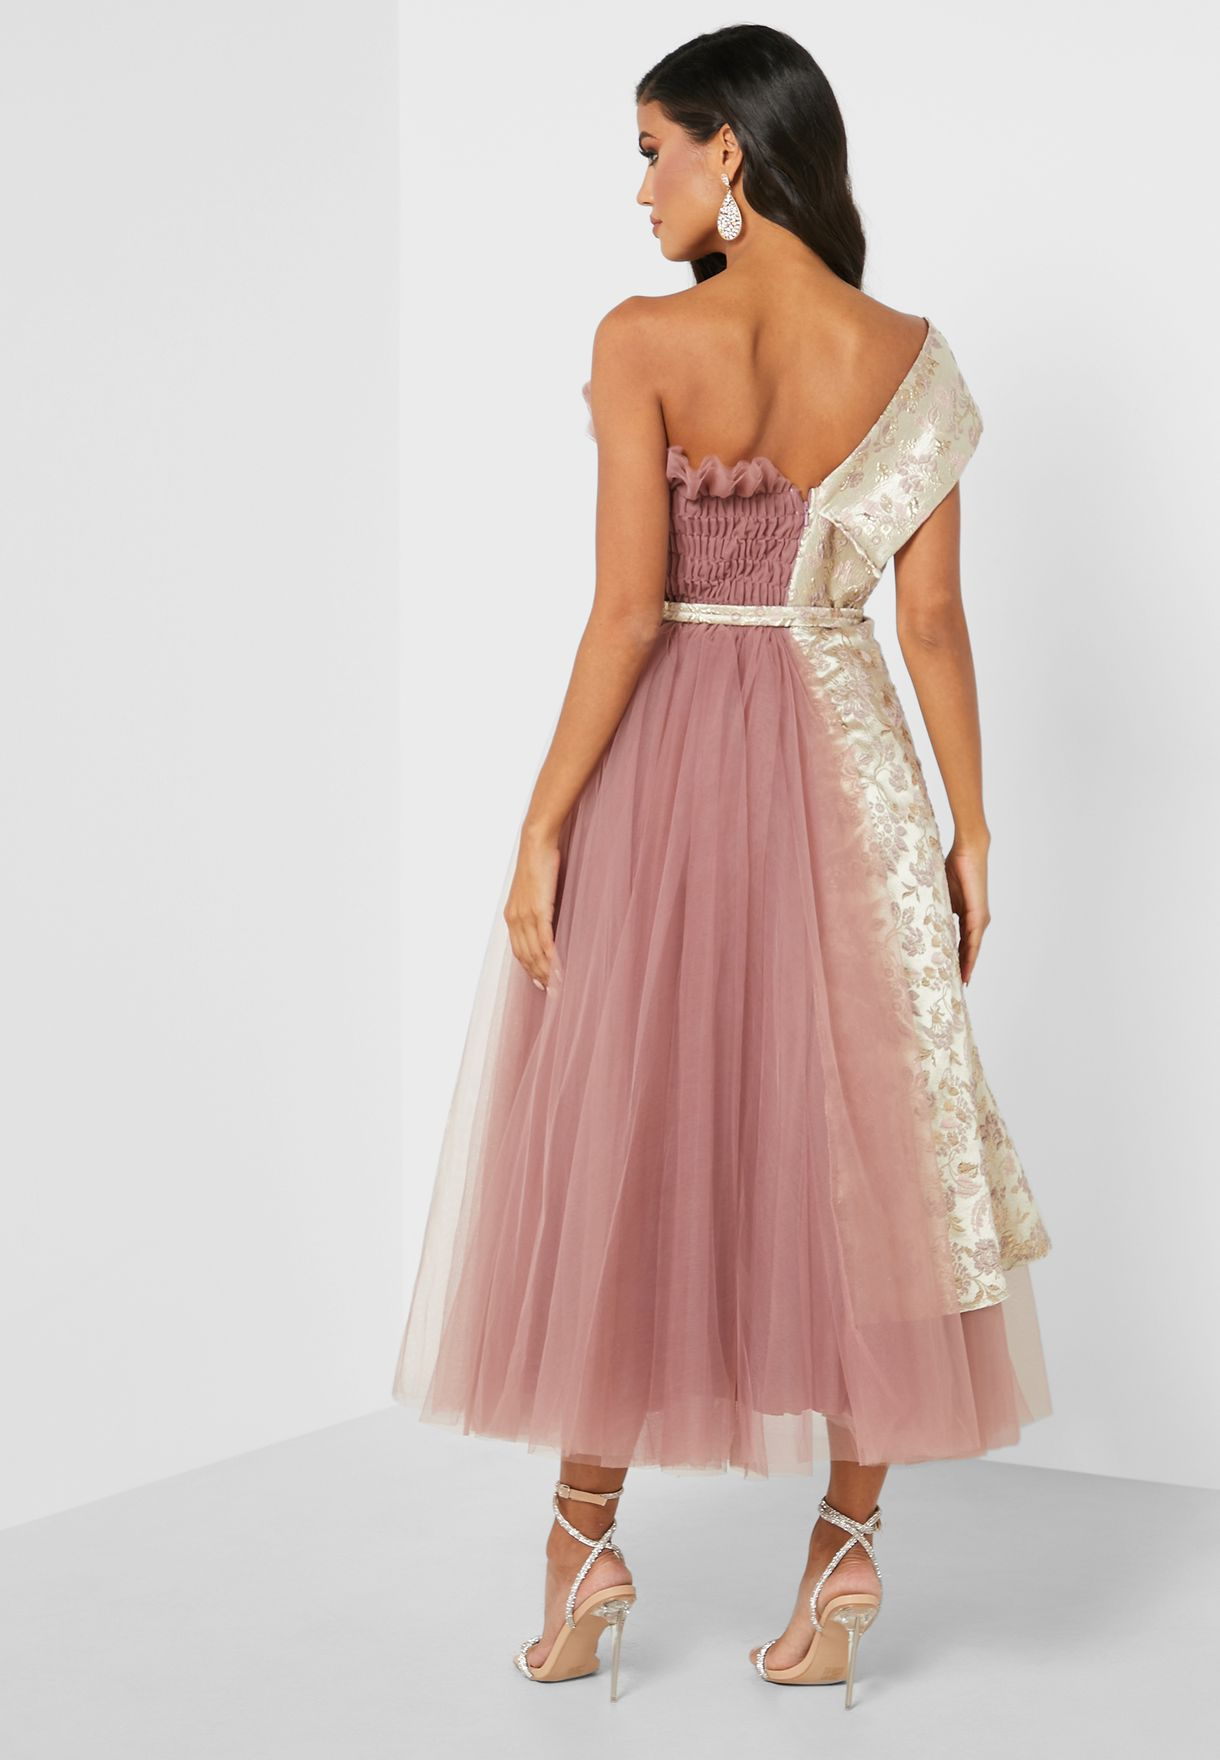 Belted Tulle Jacquard Dress